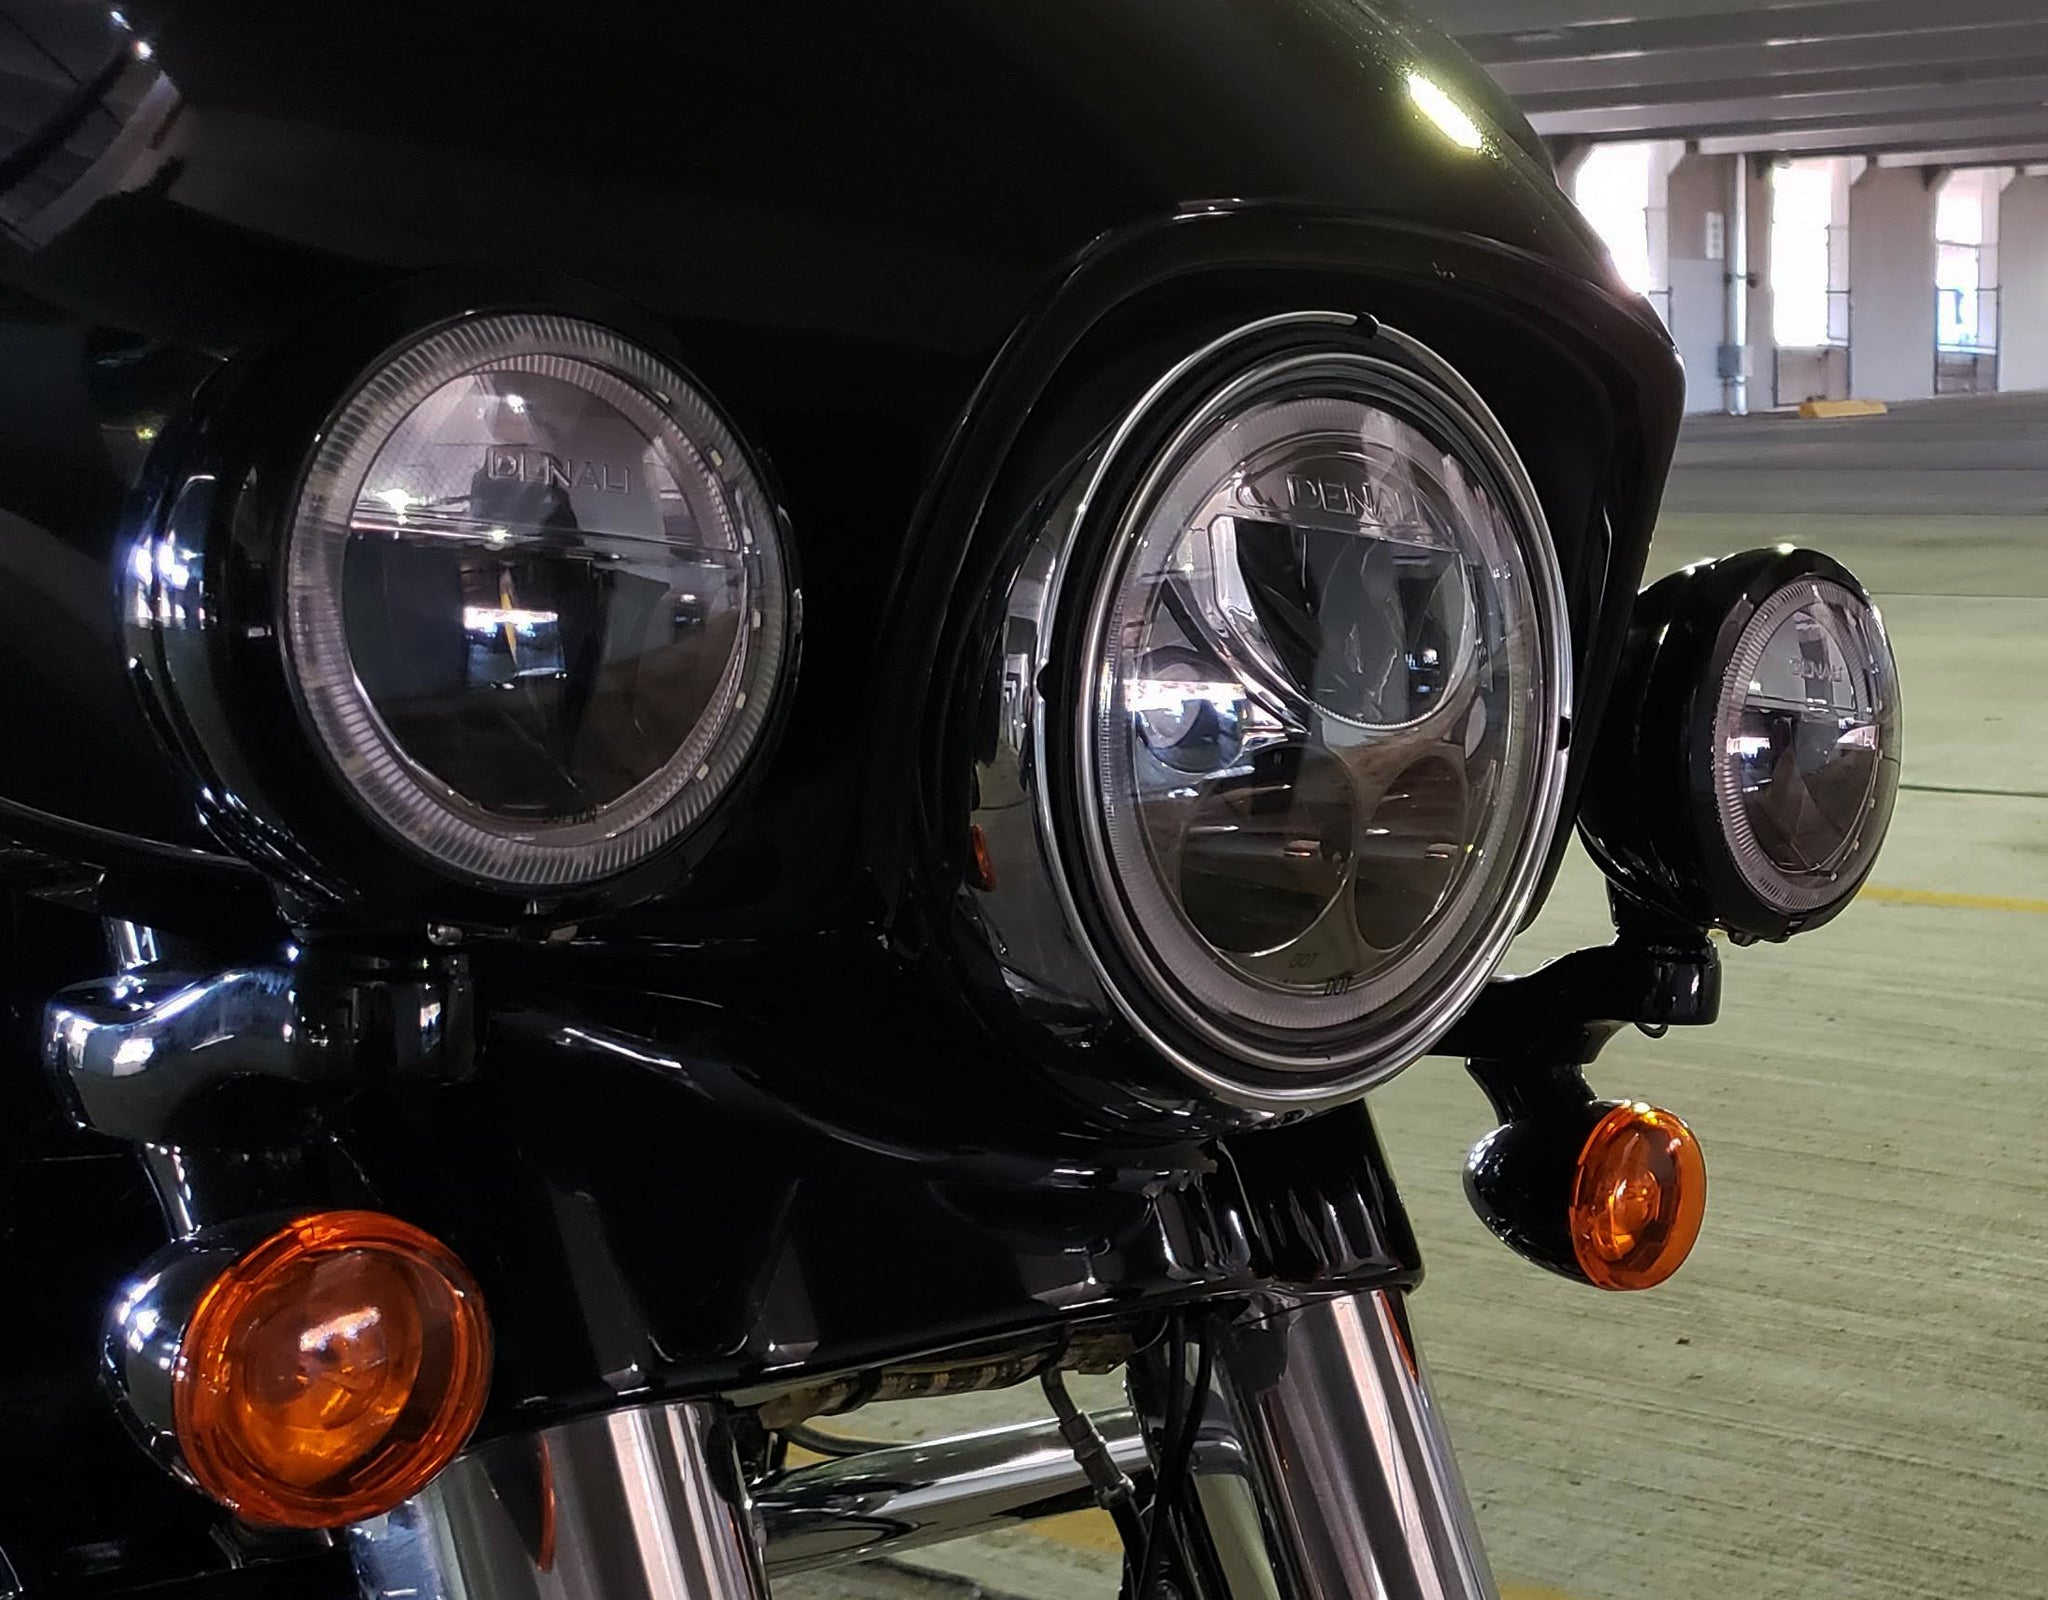 M7 & M4 LED Lights installed into the factory headlight buckets.